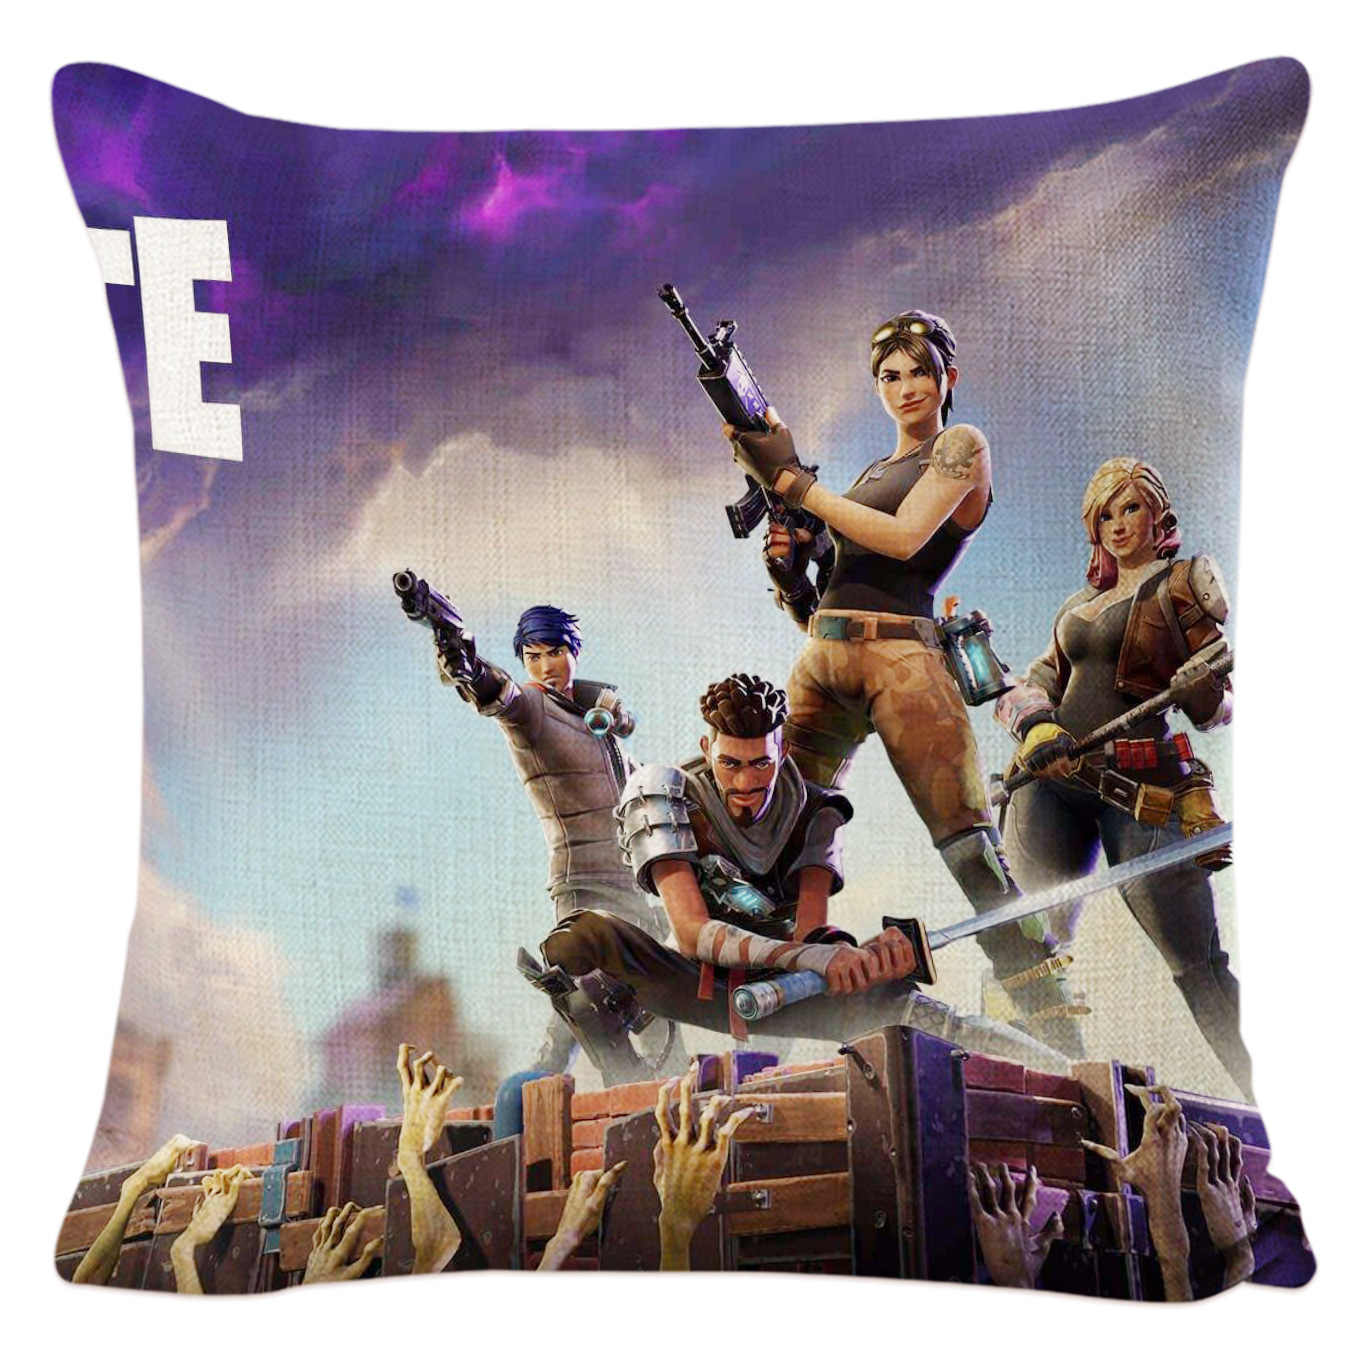 UBRUSH Explosion Models Home Fort Pillow of Night Animation Cushion han xin Pp Cotton Linen Pillow Cover to Map Custom-Built